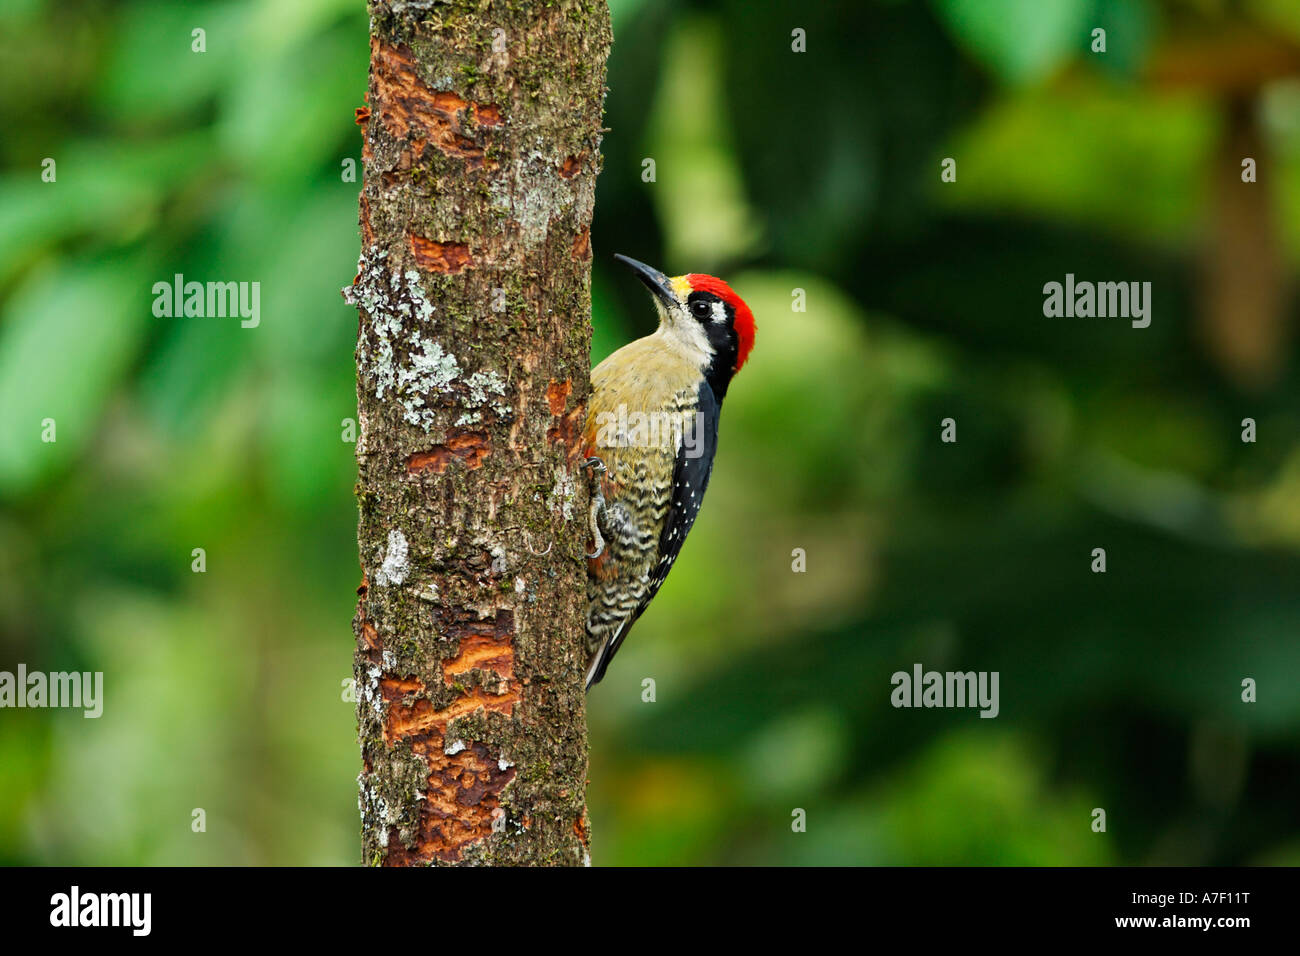 Red-crowned Woodpecker, Melanerpes rubricapillus, Costa Rica - Stock Image